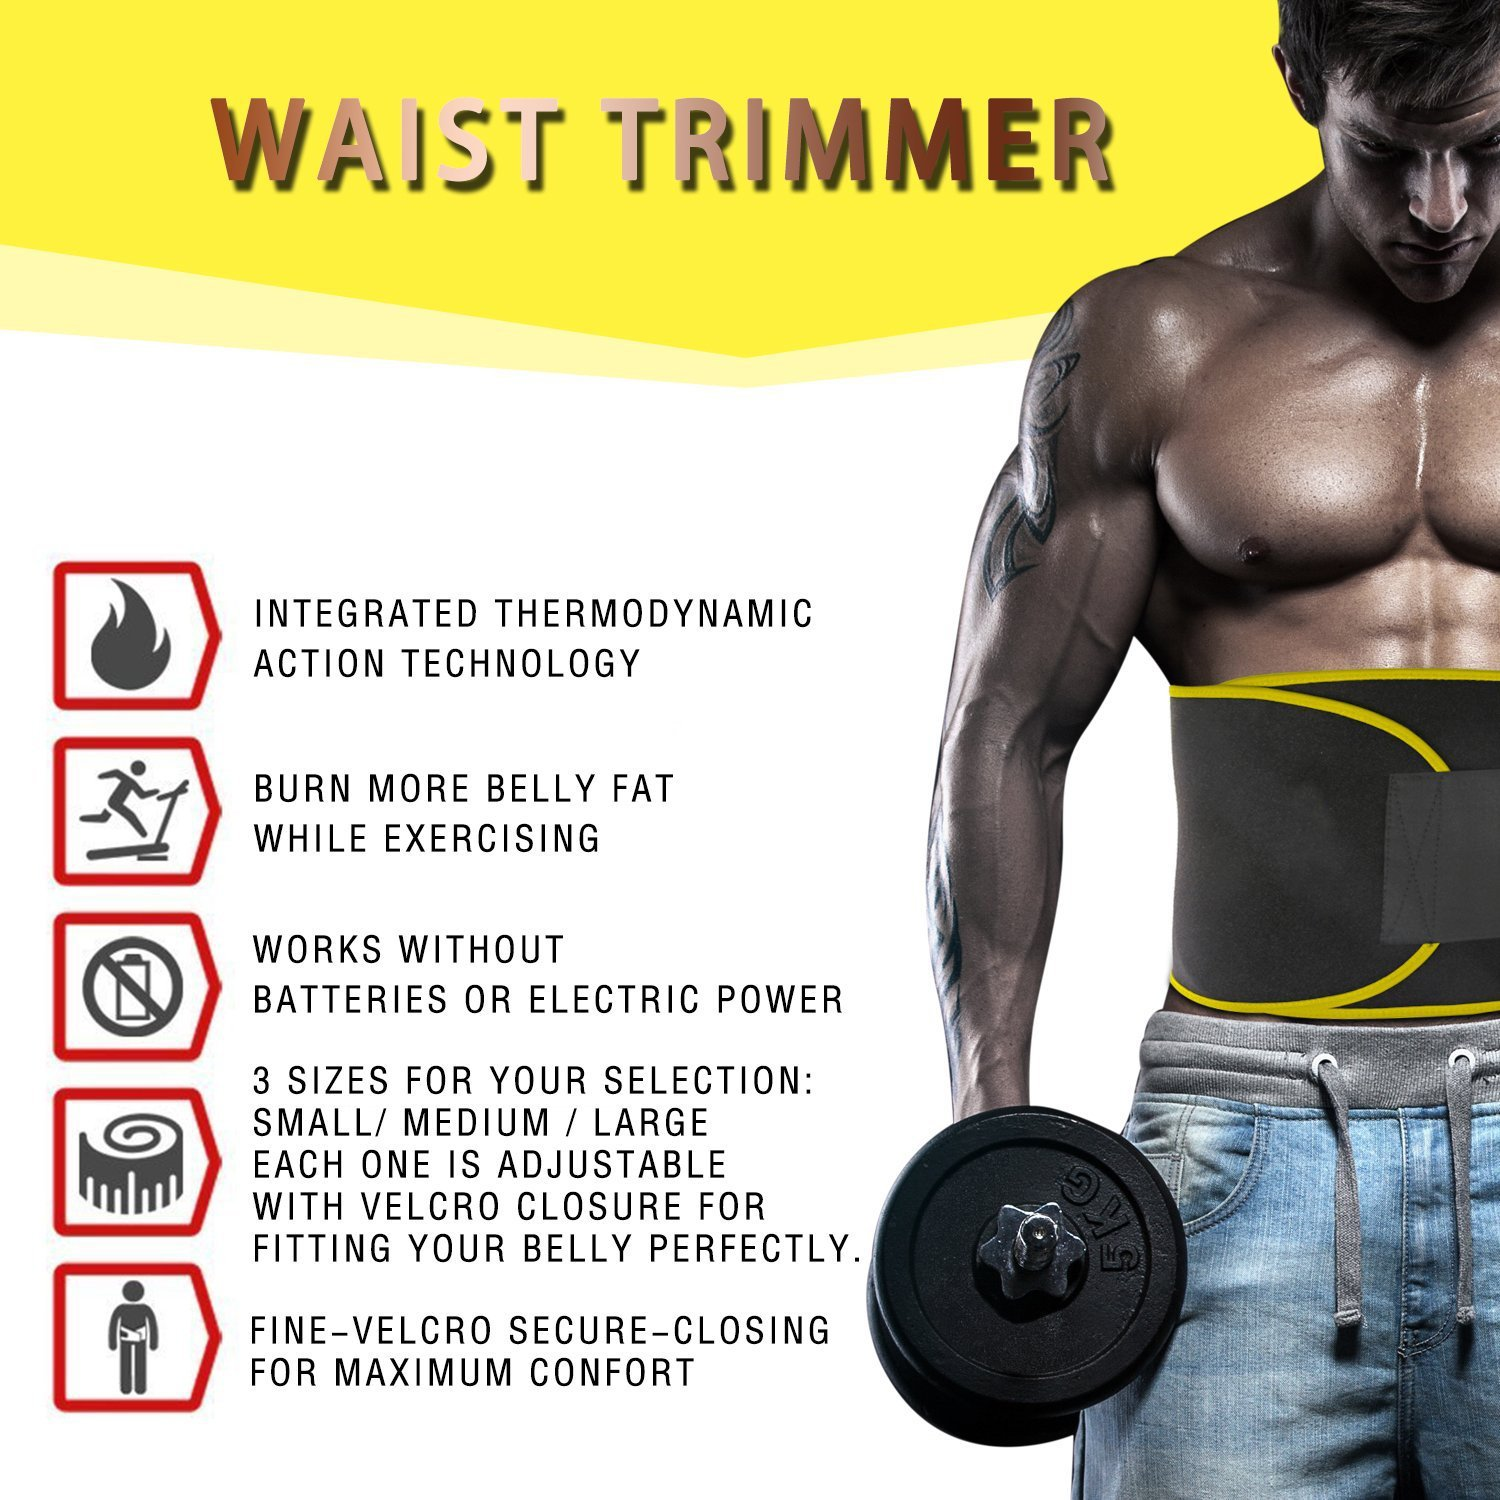 e38e1be042b Buy Sweet sweat premium waist trimmer shaper slimming belt Online at Low  Prices in India - Amazon.in